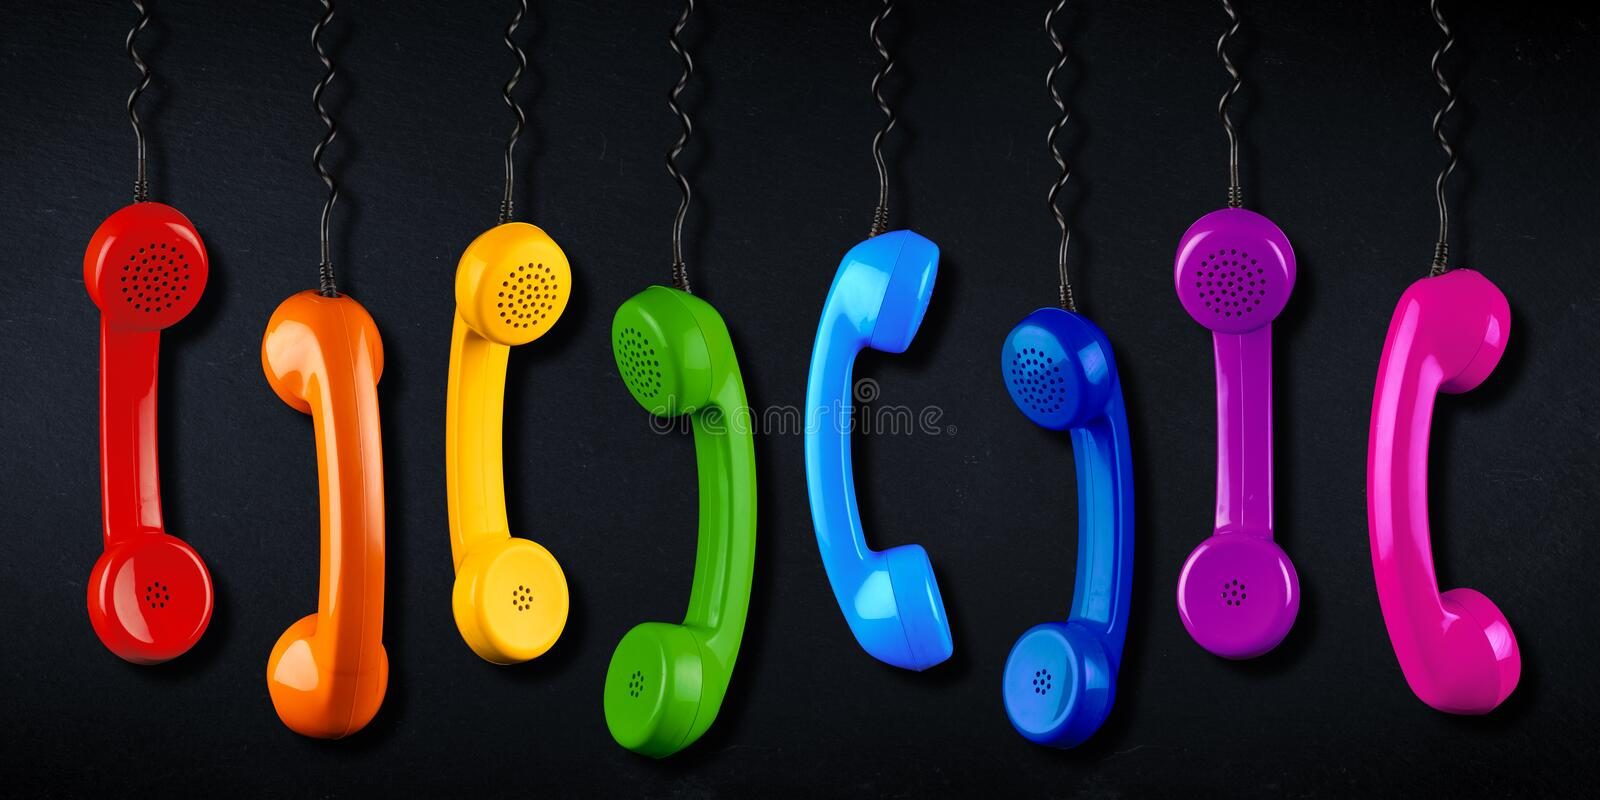 Row of colorful rainbow colored old fashioned retro phone reciever with black telephone wire black slate blackboard background, royalty free stock photos